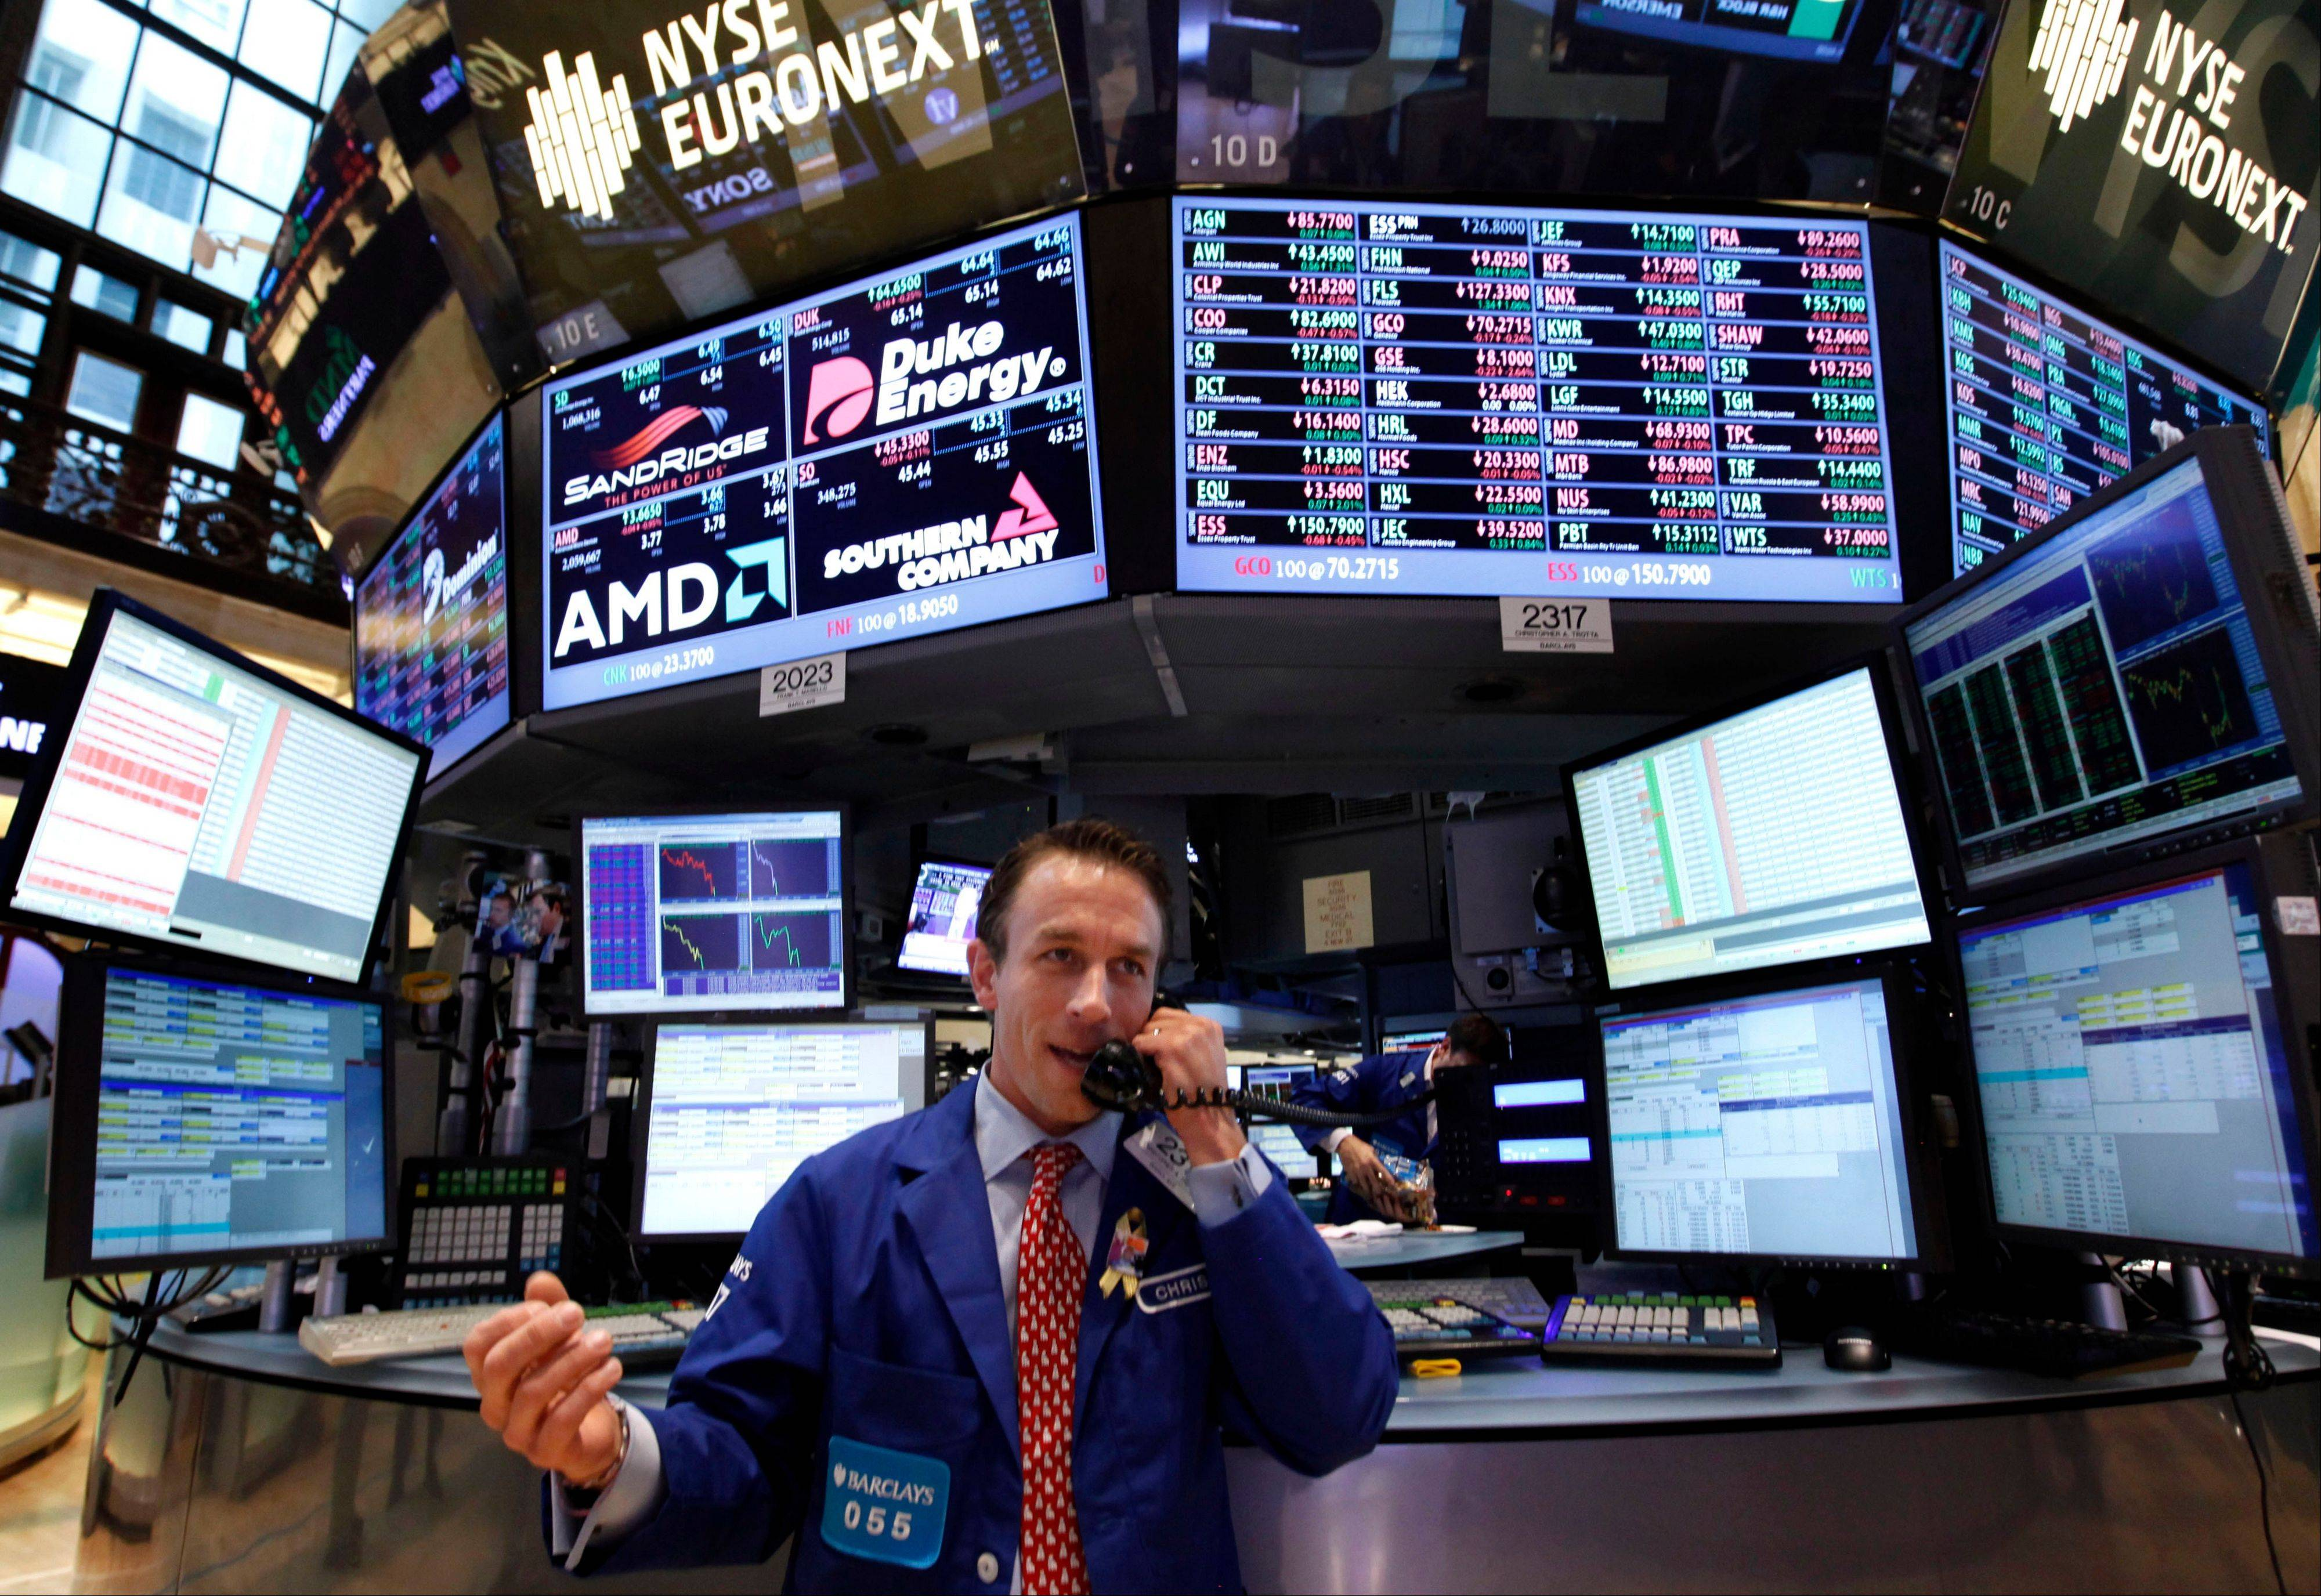 Most U.S. stocks fell, sending the Standard & Poor�s 500 Index lower for a second day, amid a slump in FedEx Corp. and disappointing global economic data as investors awaited the European Central Bank�s plan to buy bonds.